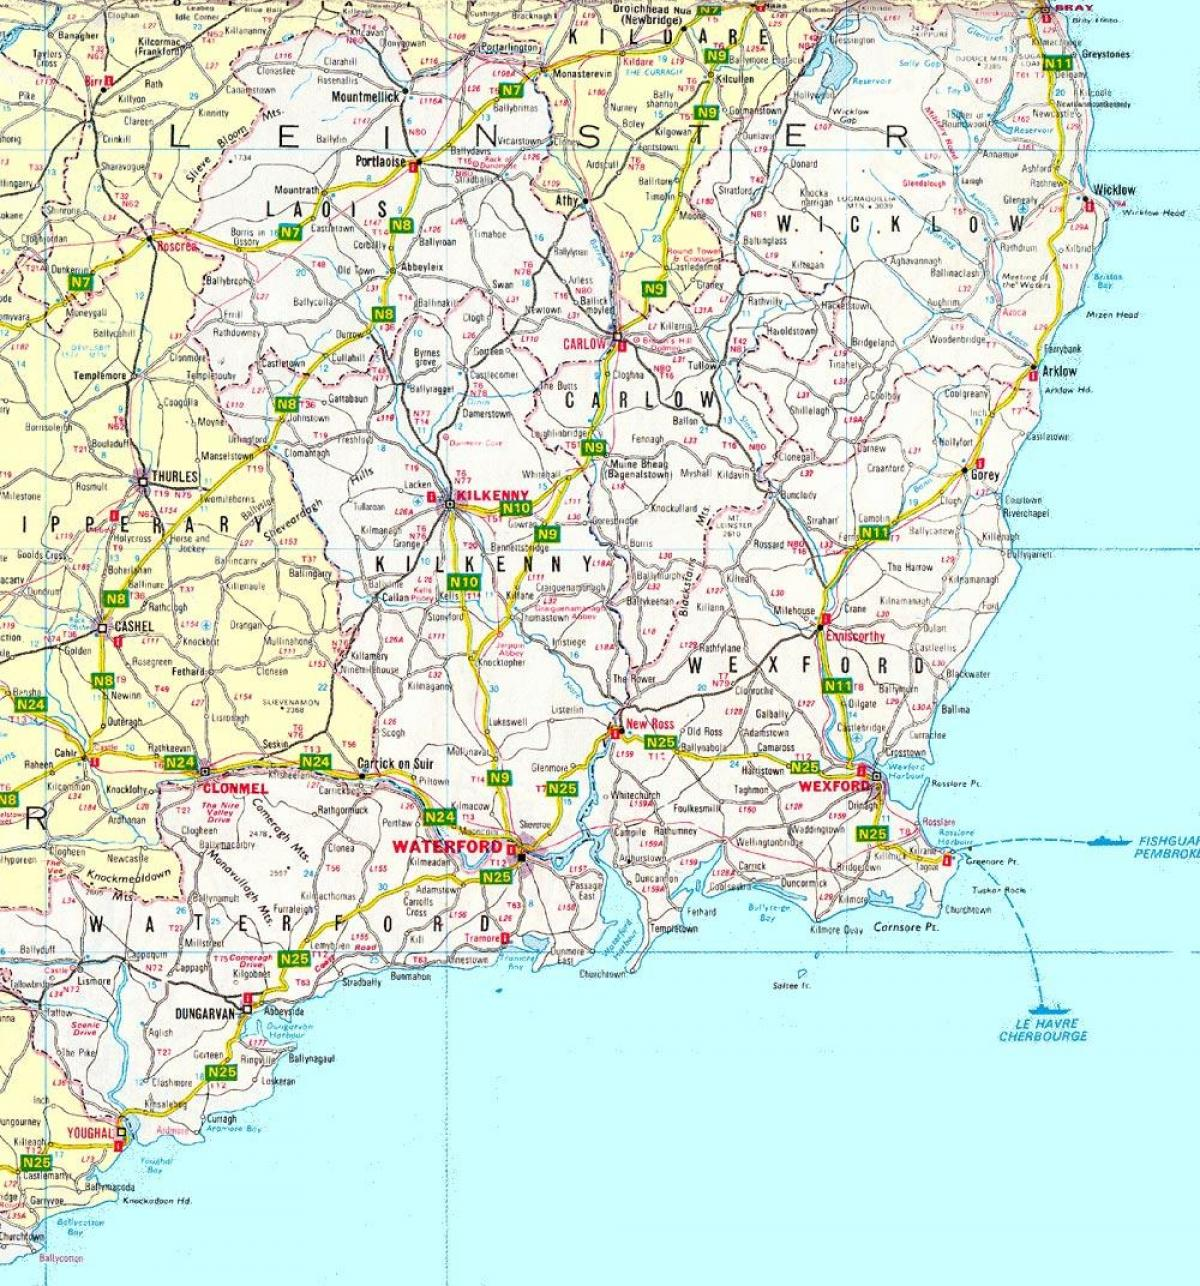 Map Of South East Ireland.East Ireland Map Map Of South East Ireland Northern Europe